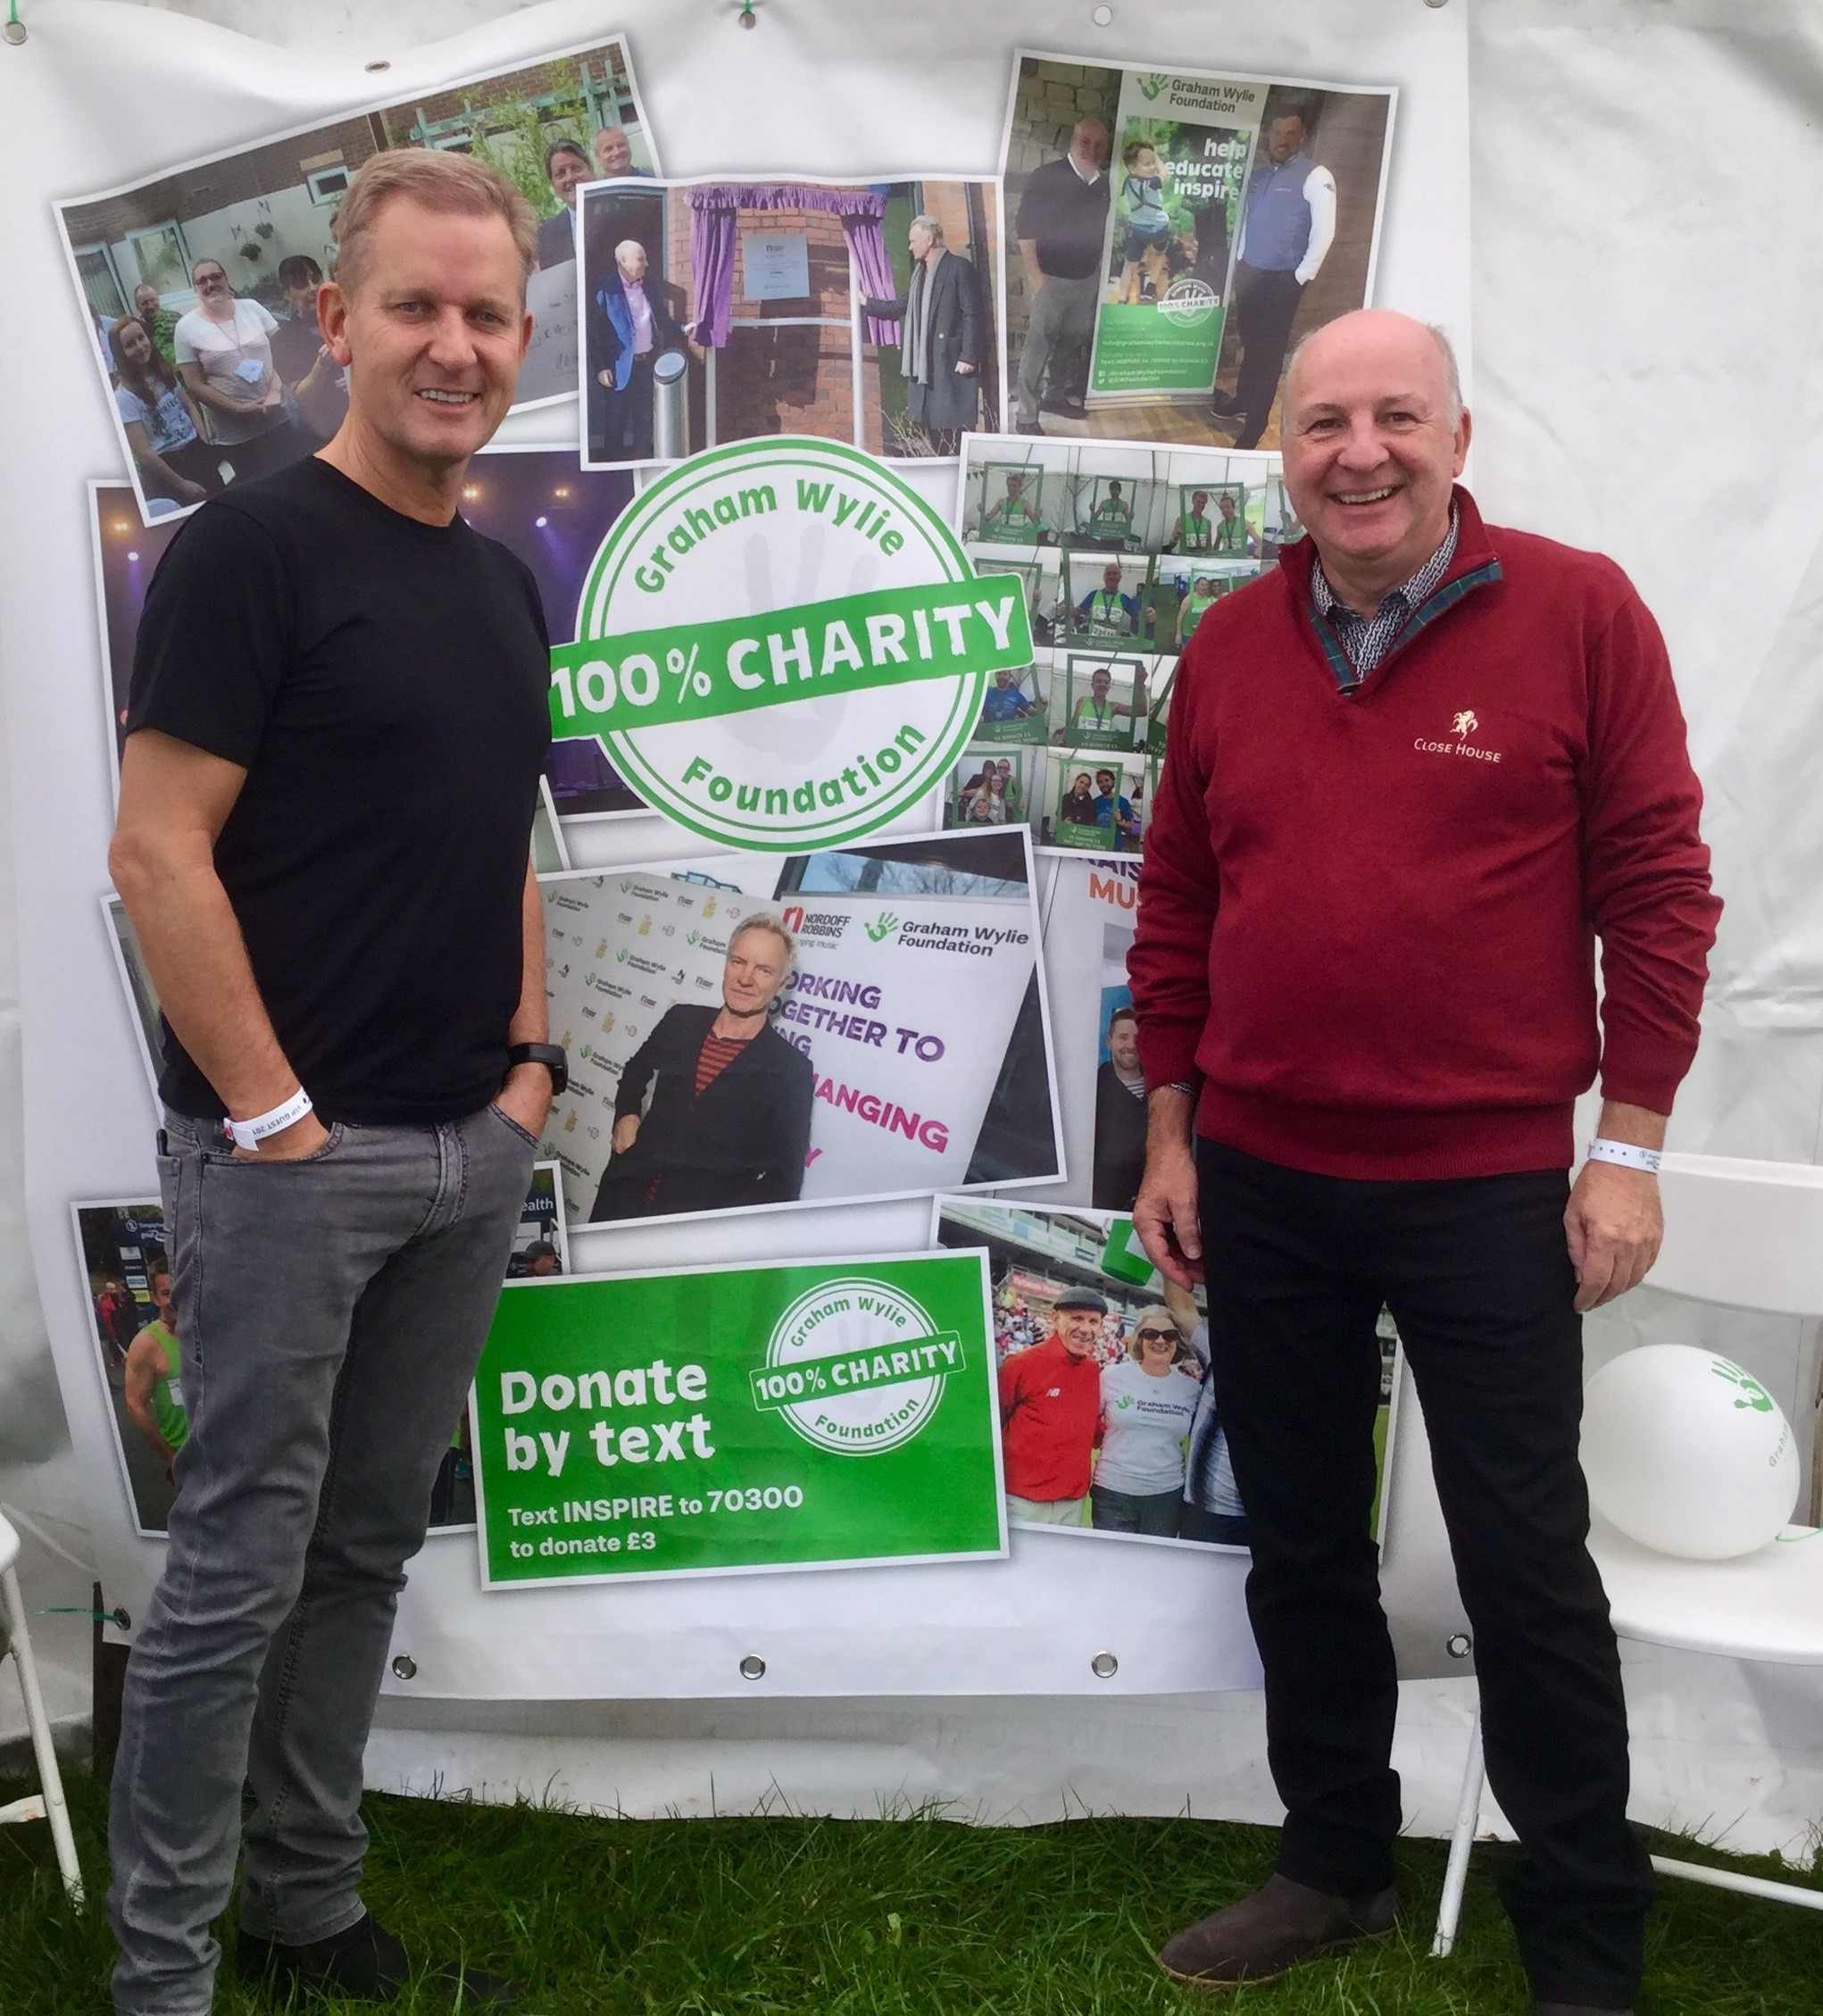 TV presenter Jeremy Kyle with businessman Graham Wylie.